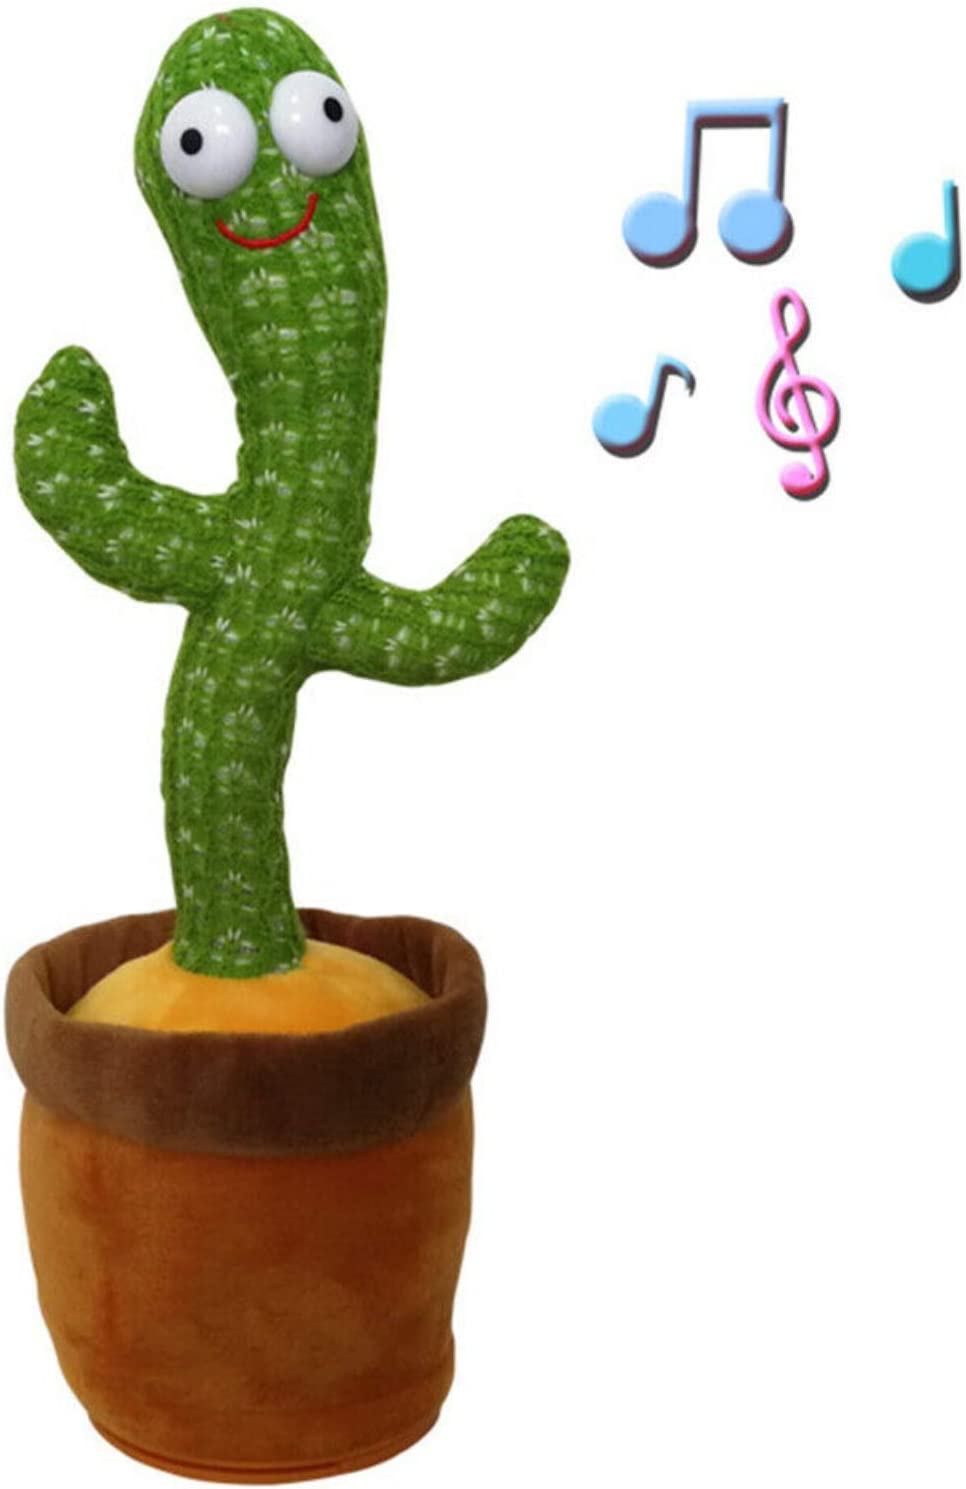 DEVELE Cactus Plush Toys Challenge the lowest price of Japan ☆ Electronic and Limited time sale Dancing Singing wi